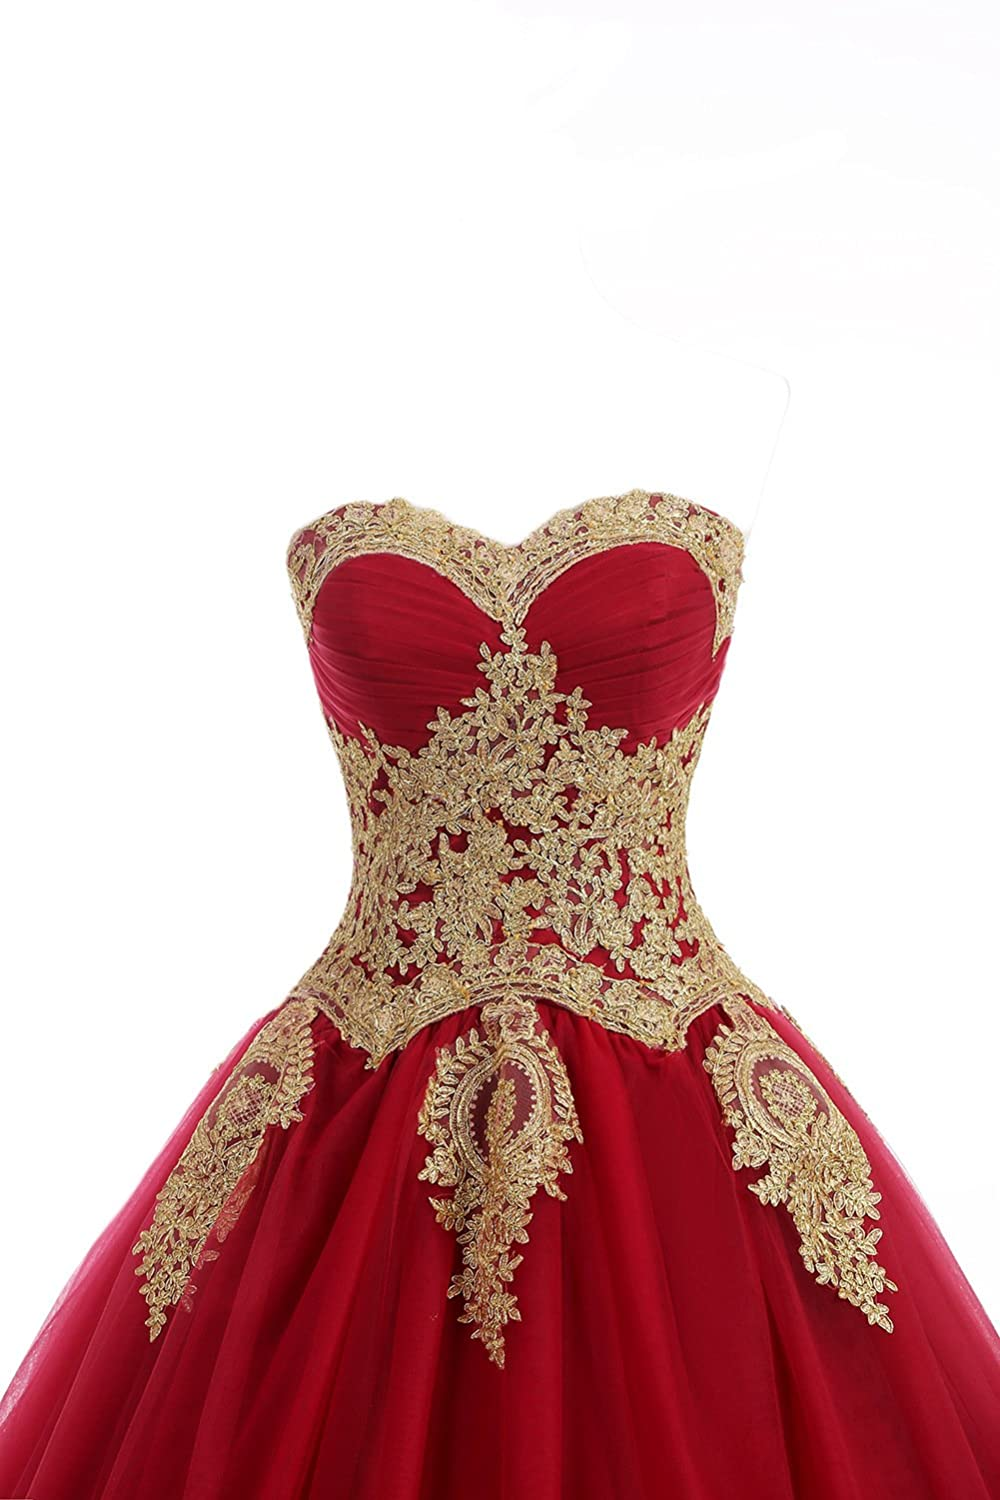 b072eeaf180 Amazon.com  LMBRIDAL Women s Appliqued Quinceanera Dress Sweetheart  Birthday Ball Gown Red 24W  Clothing